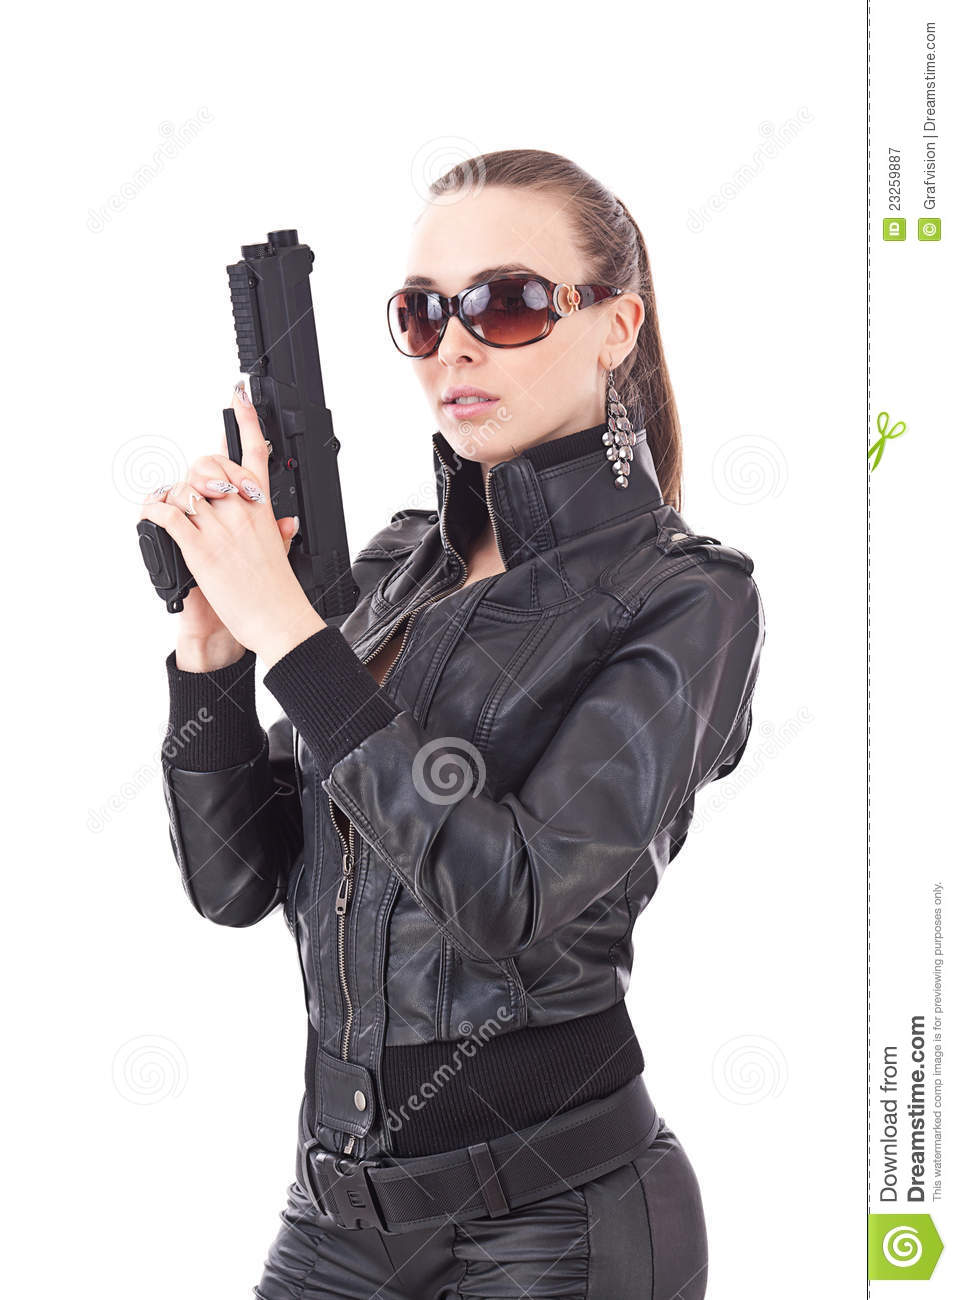 image Sexy police girl raw grips police